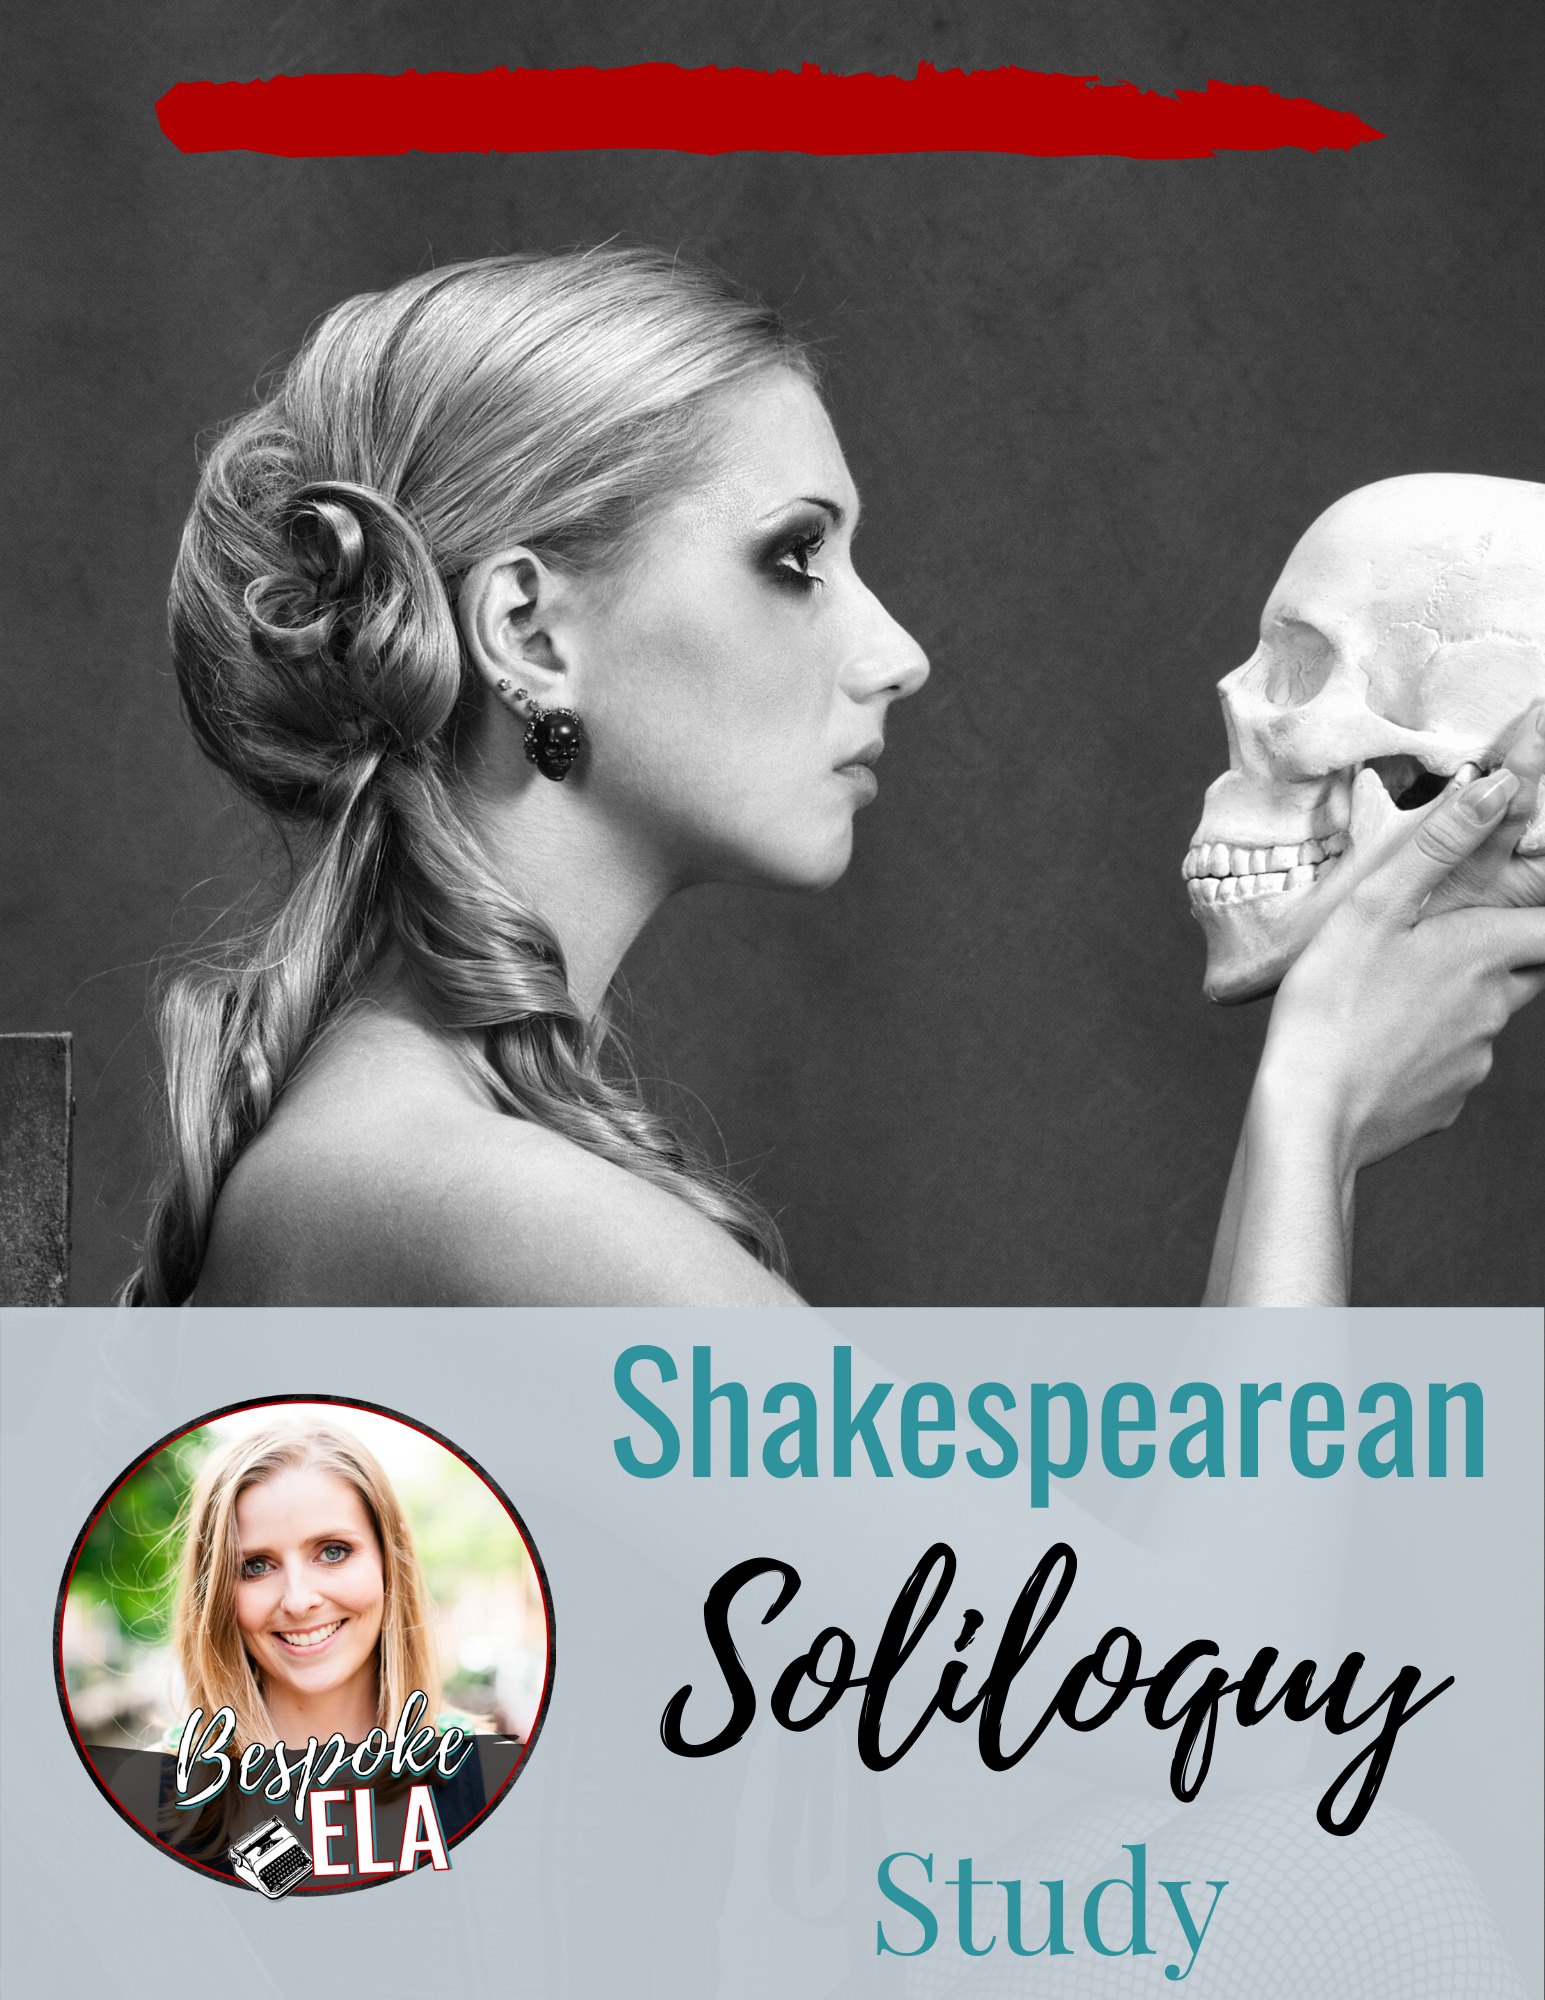 Shakespearean Soliloquy Study For Any Shakespearean Play